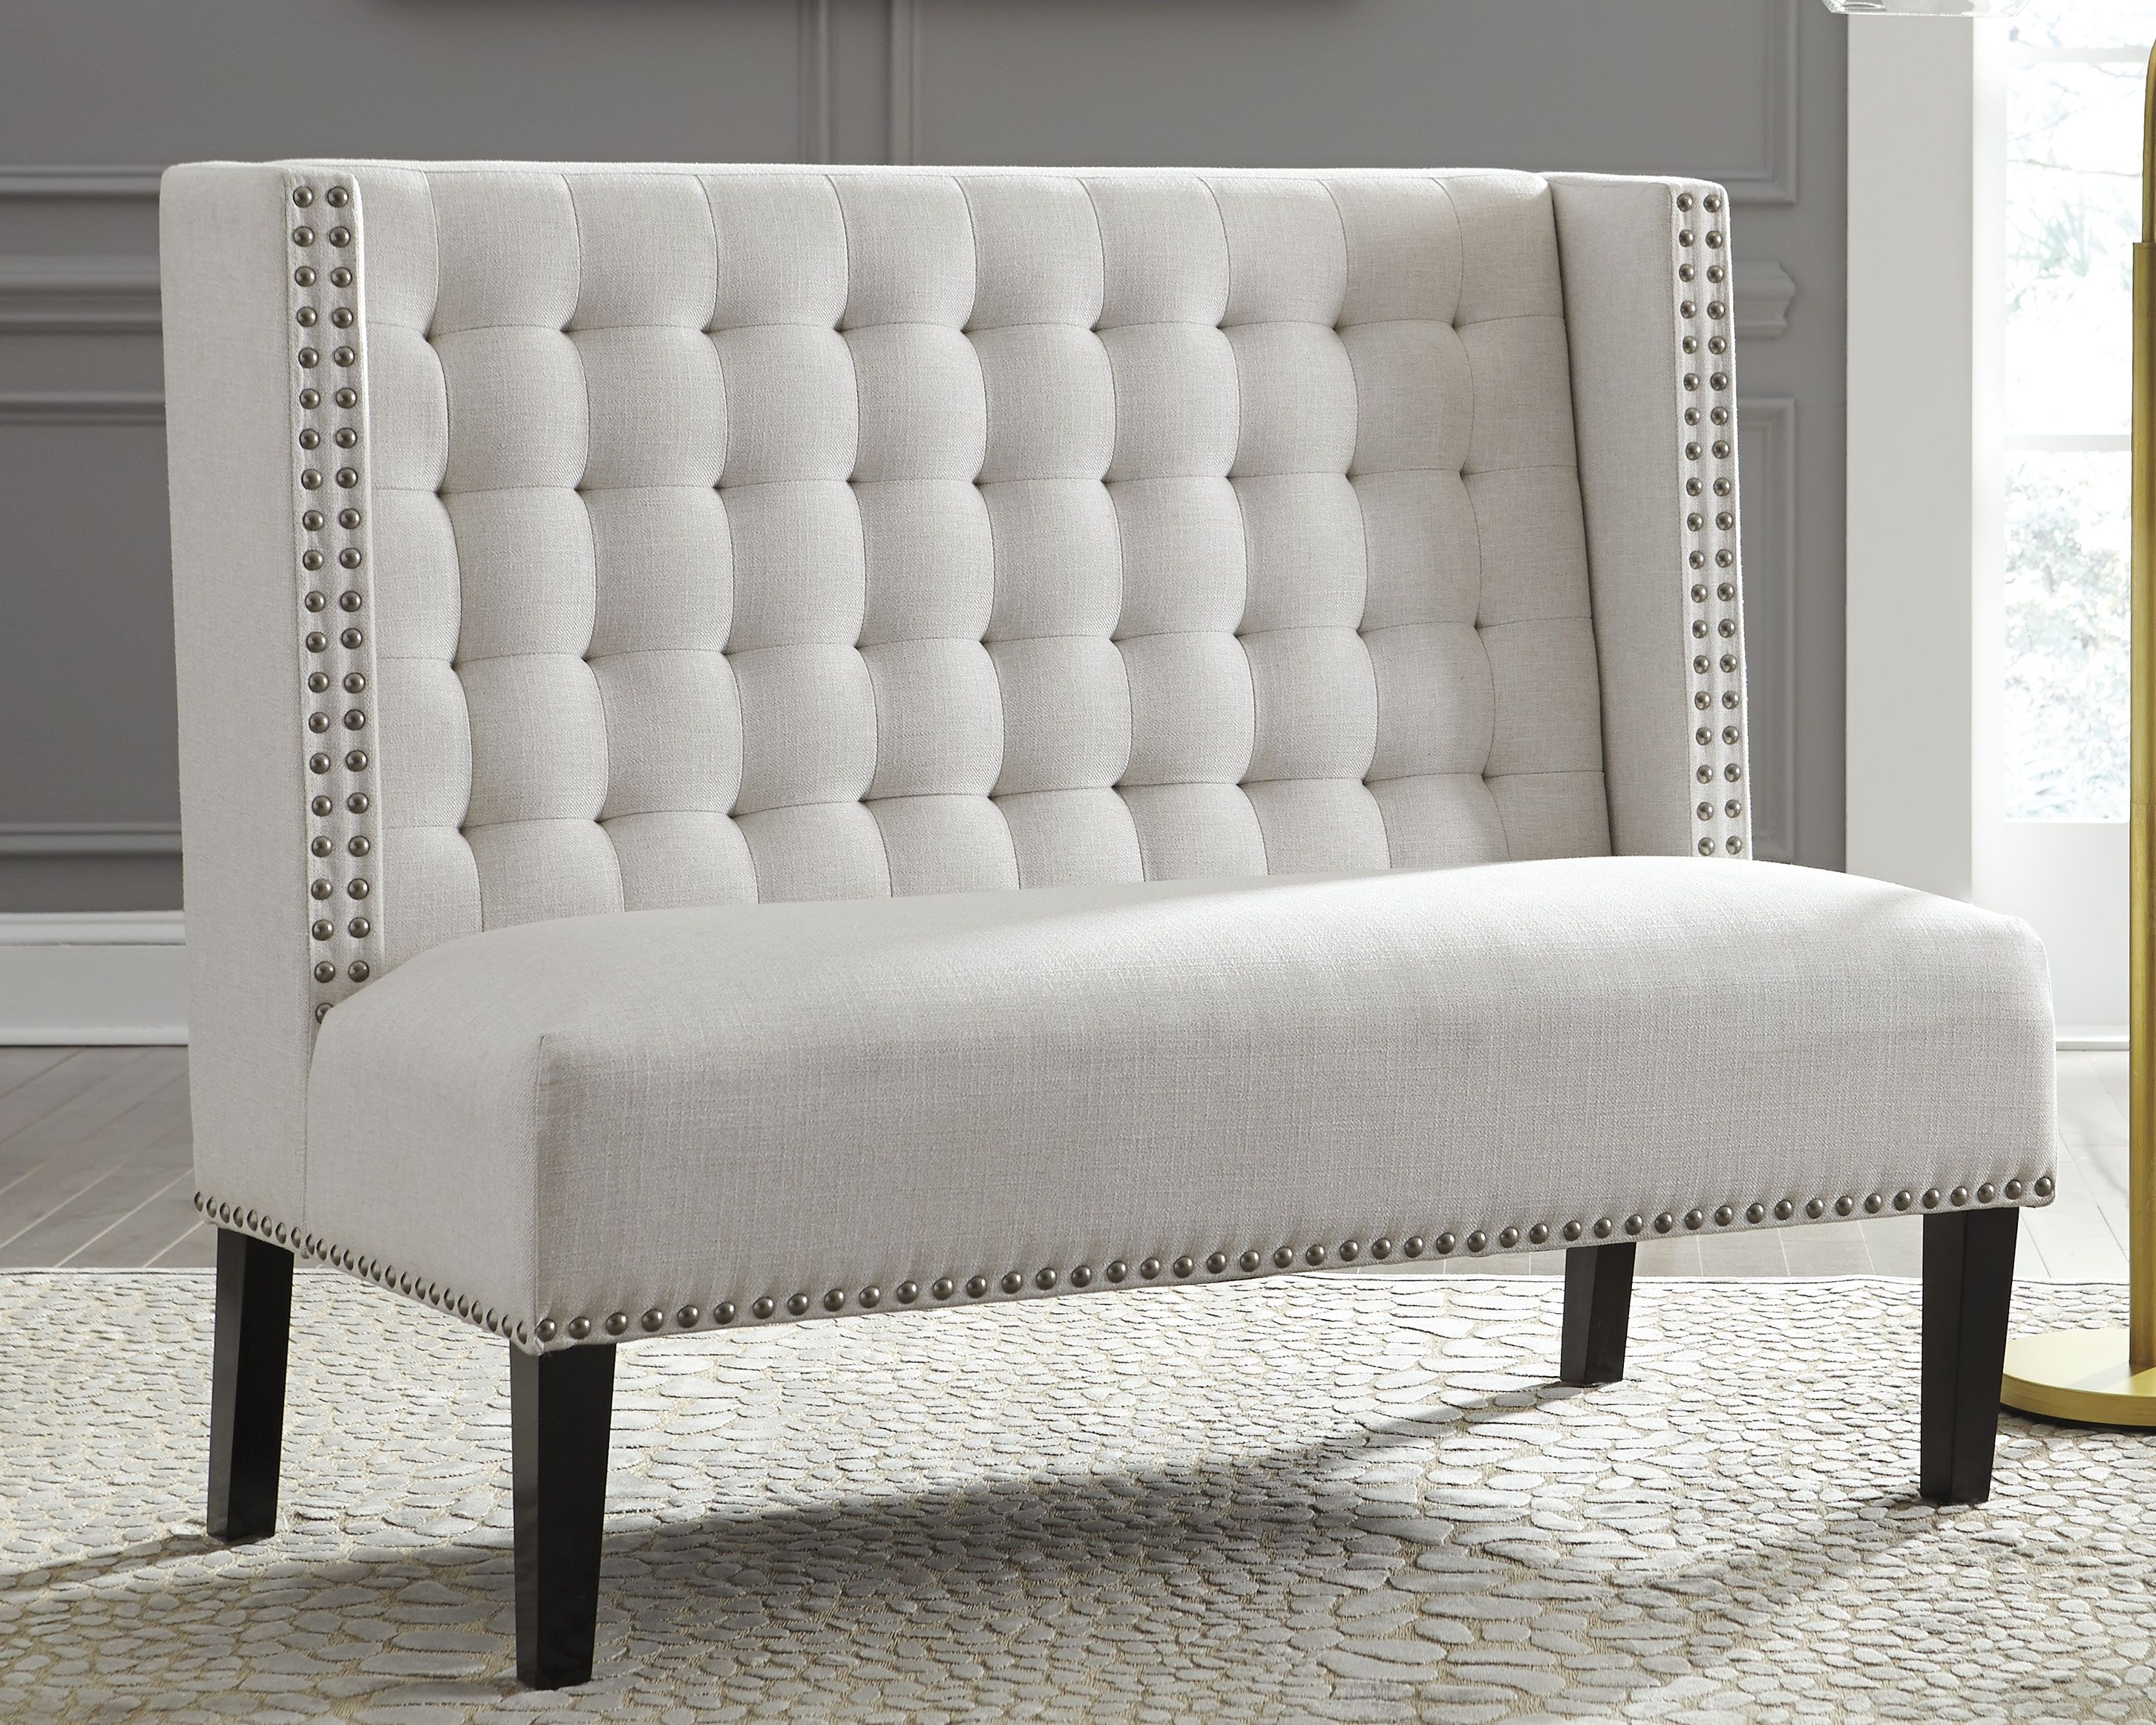 Beauland Accent Bench, Ivory | Furniture, Bedroom furniture ...